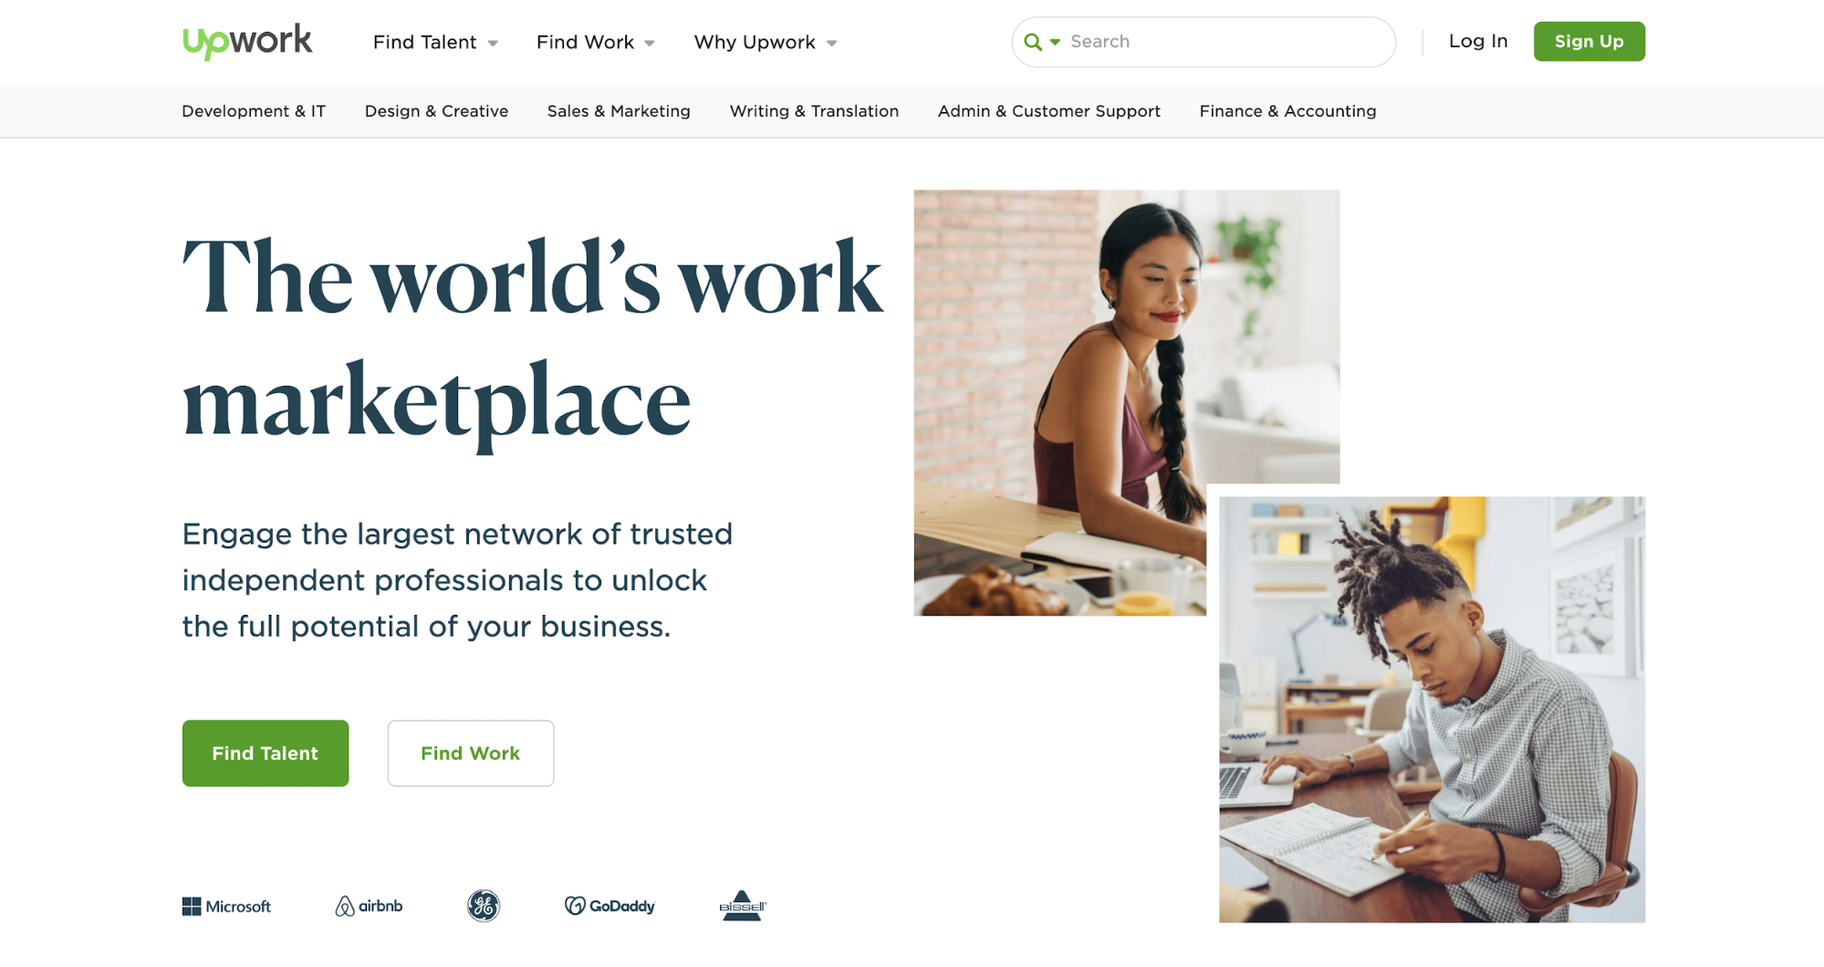 Tools for Hiring: Upwork